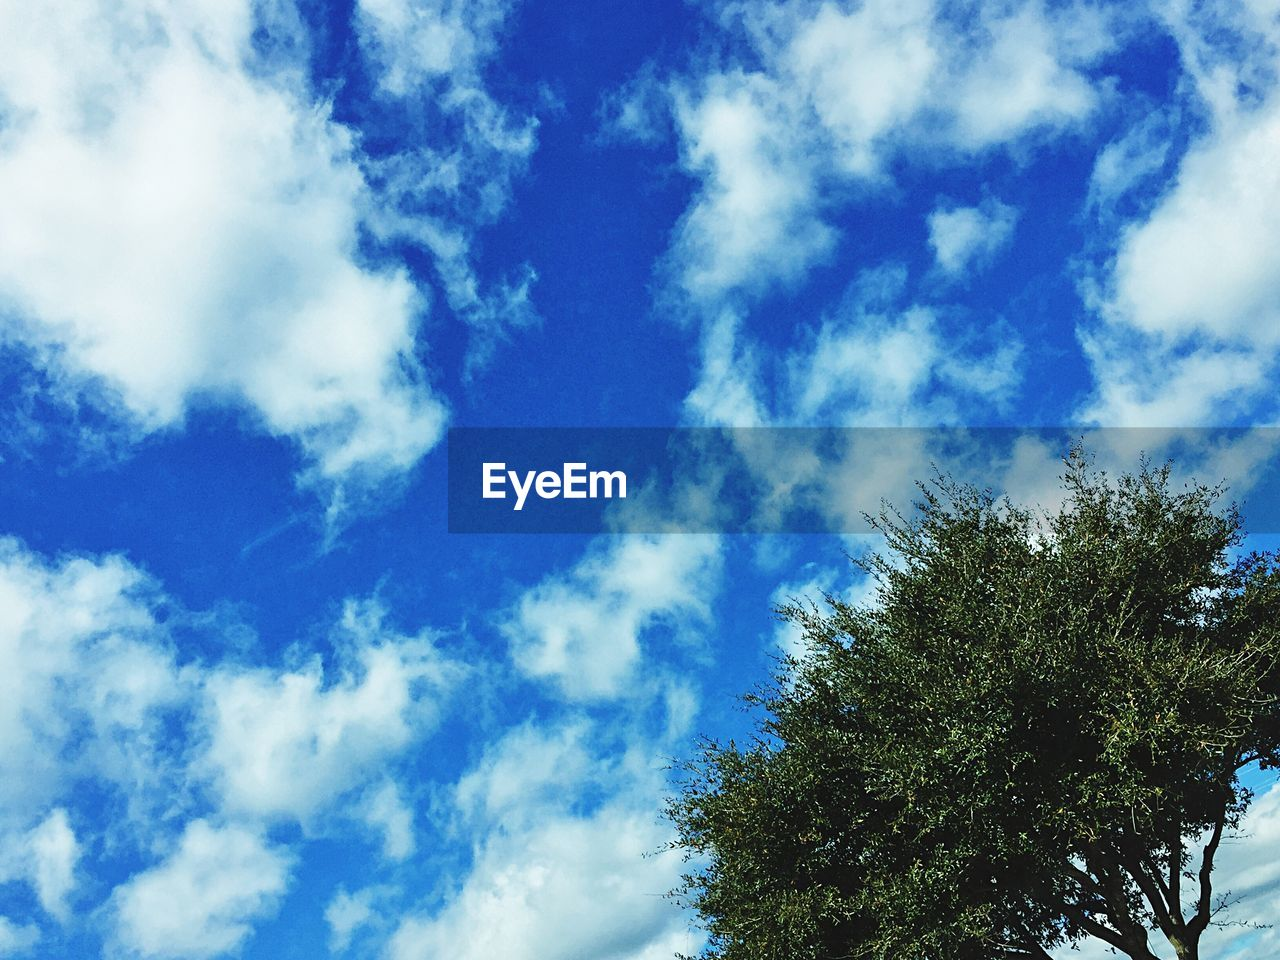 Low angle view of tree against cloudy blue sky